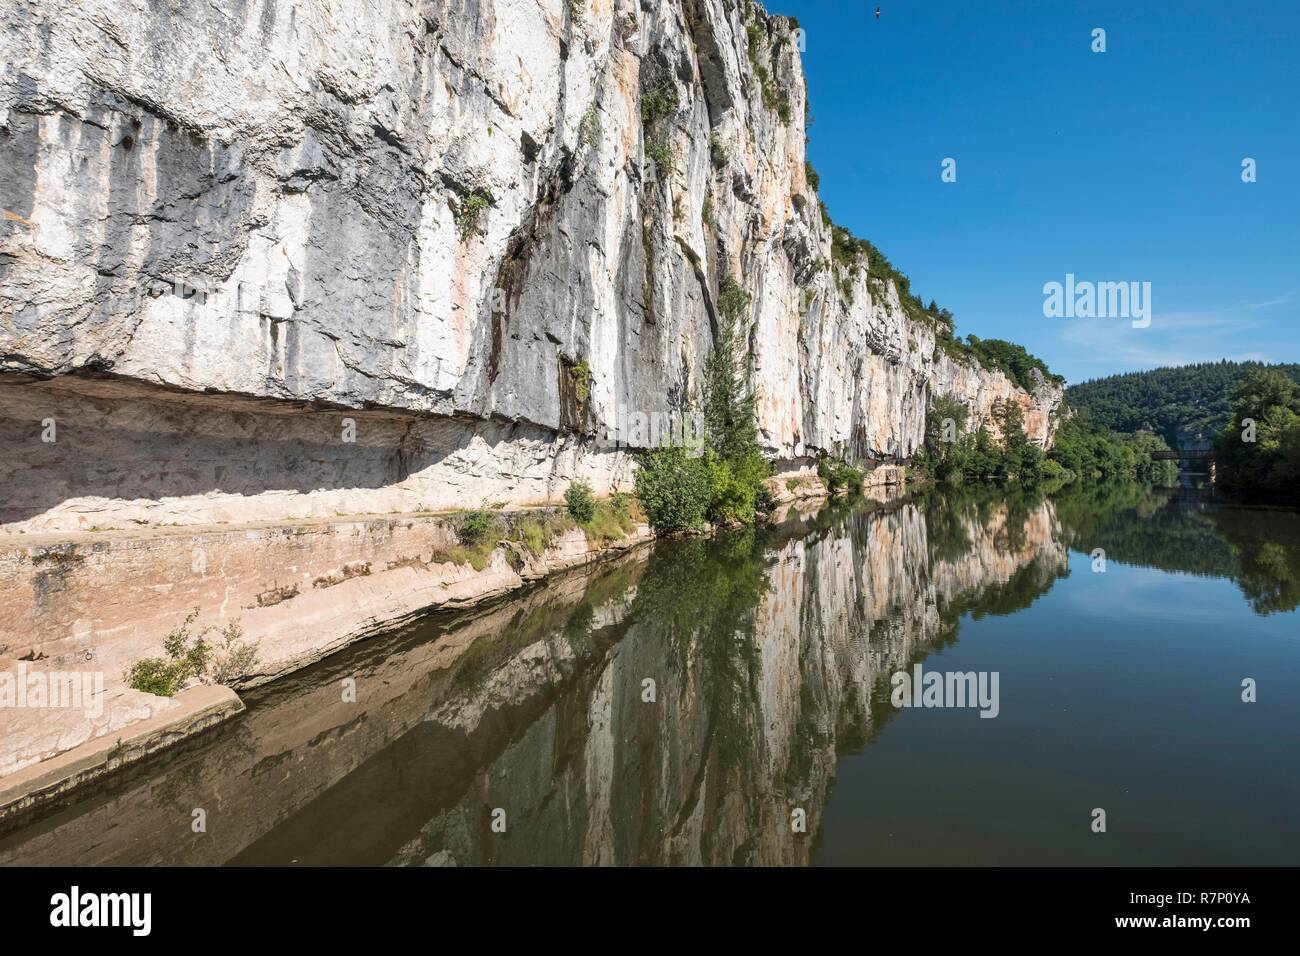 France, Lot (46), between Saint Cirq Lapopie and Bouziès, towpath of Ganil, Lot river - Stock Image